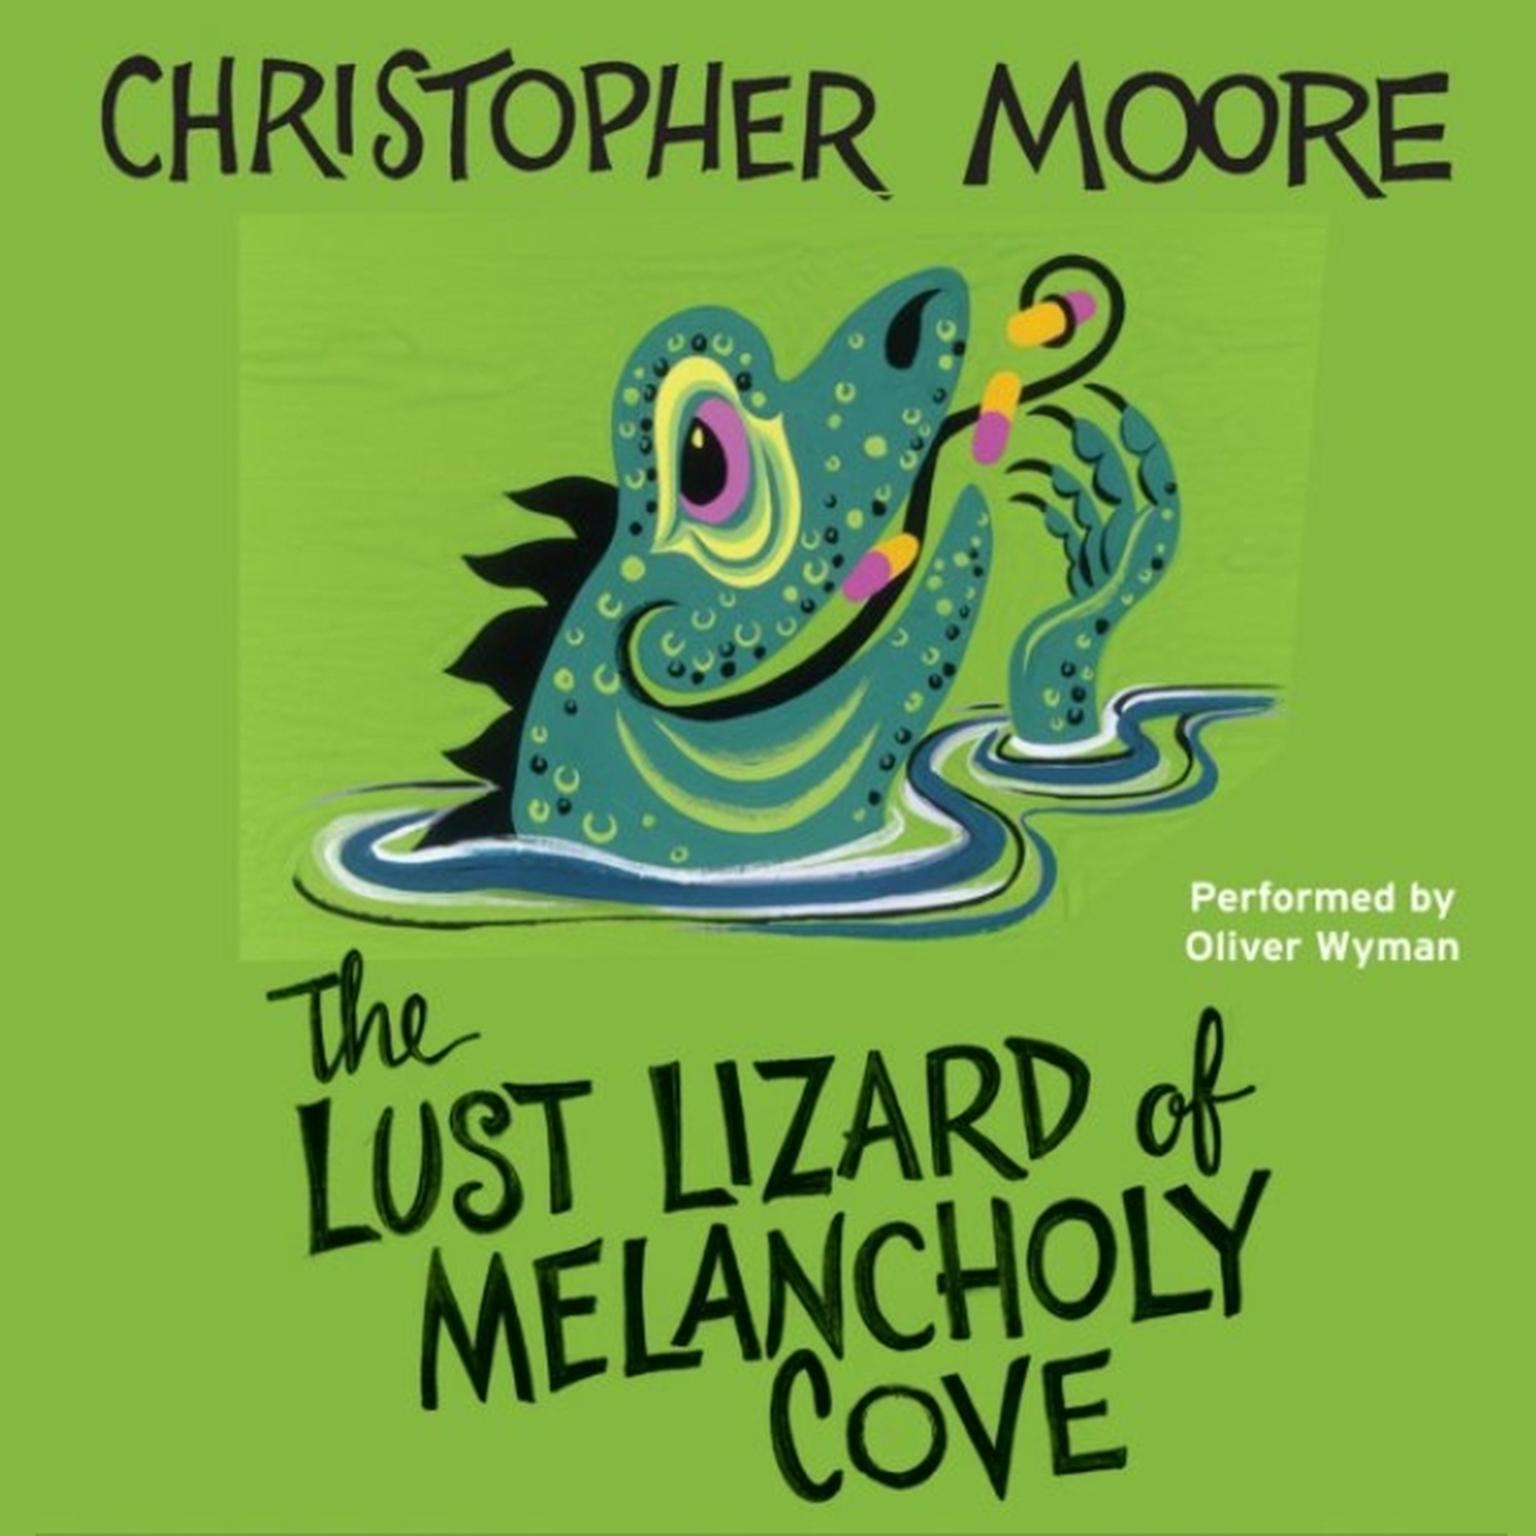 Printable The Lust Lizard of Melancholy Cove Audiobook Cover Art